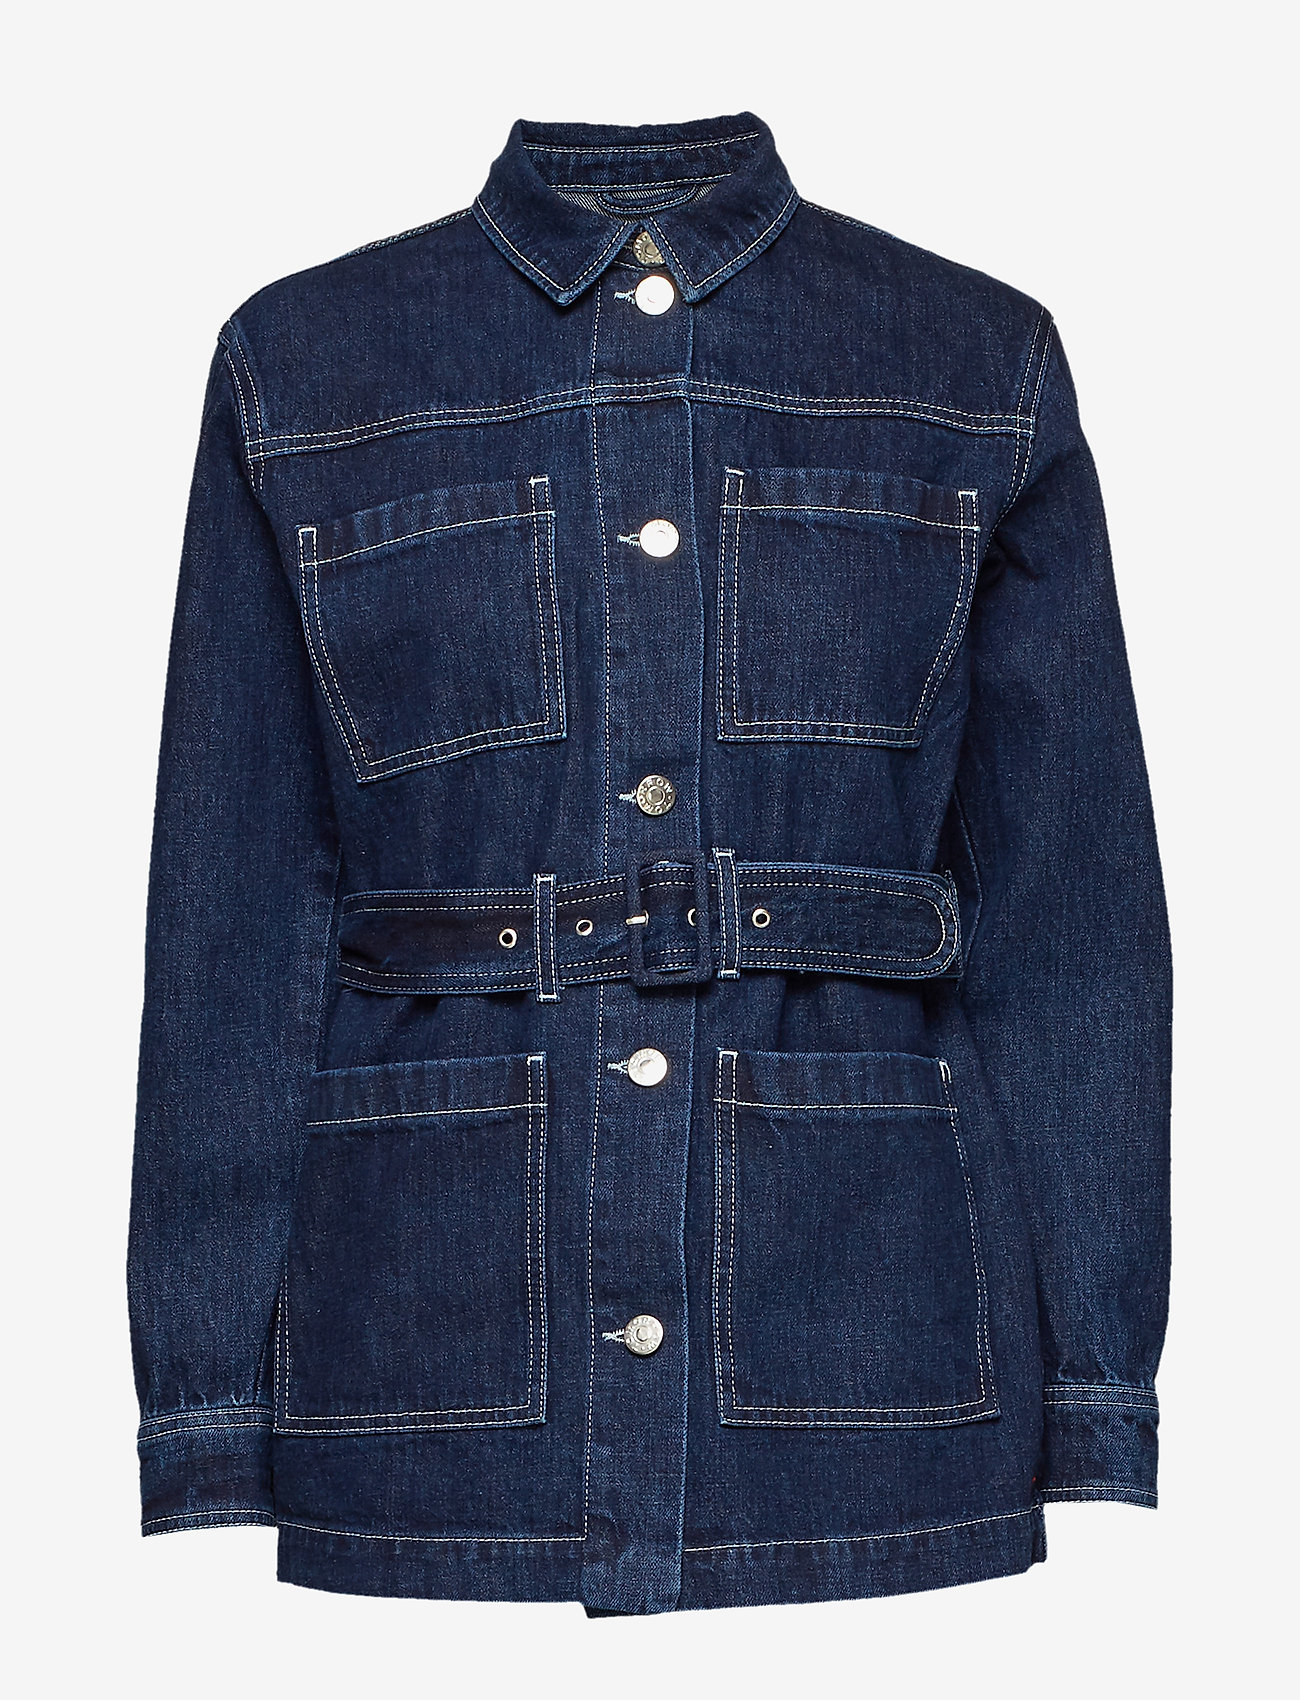 Tomorrow - Mandela uniform jacket dark Oxford - jeansjacken - denim blue - 0